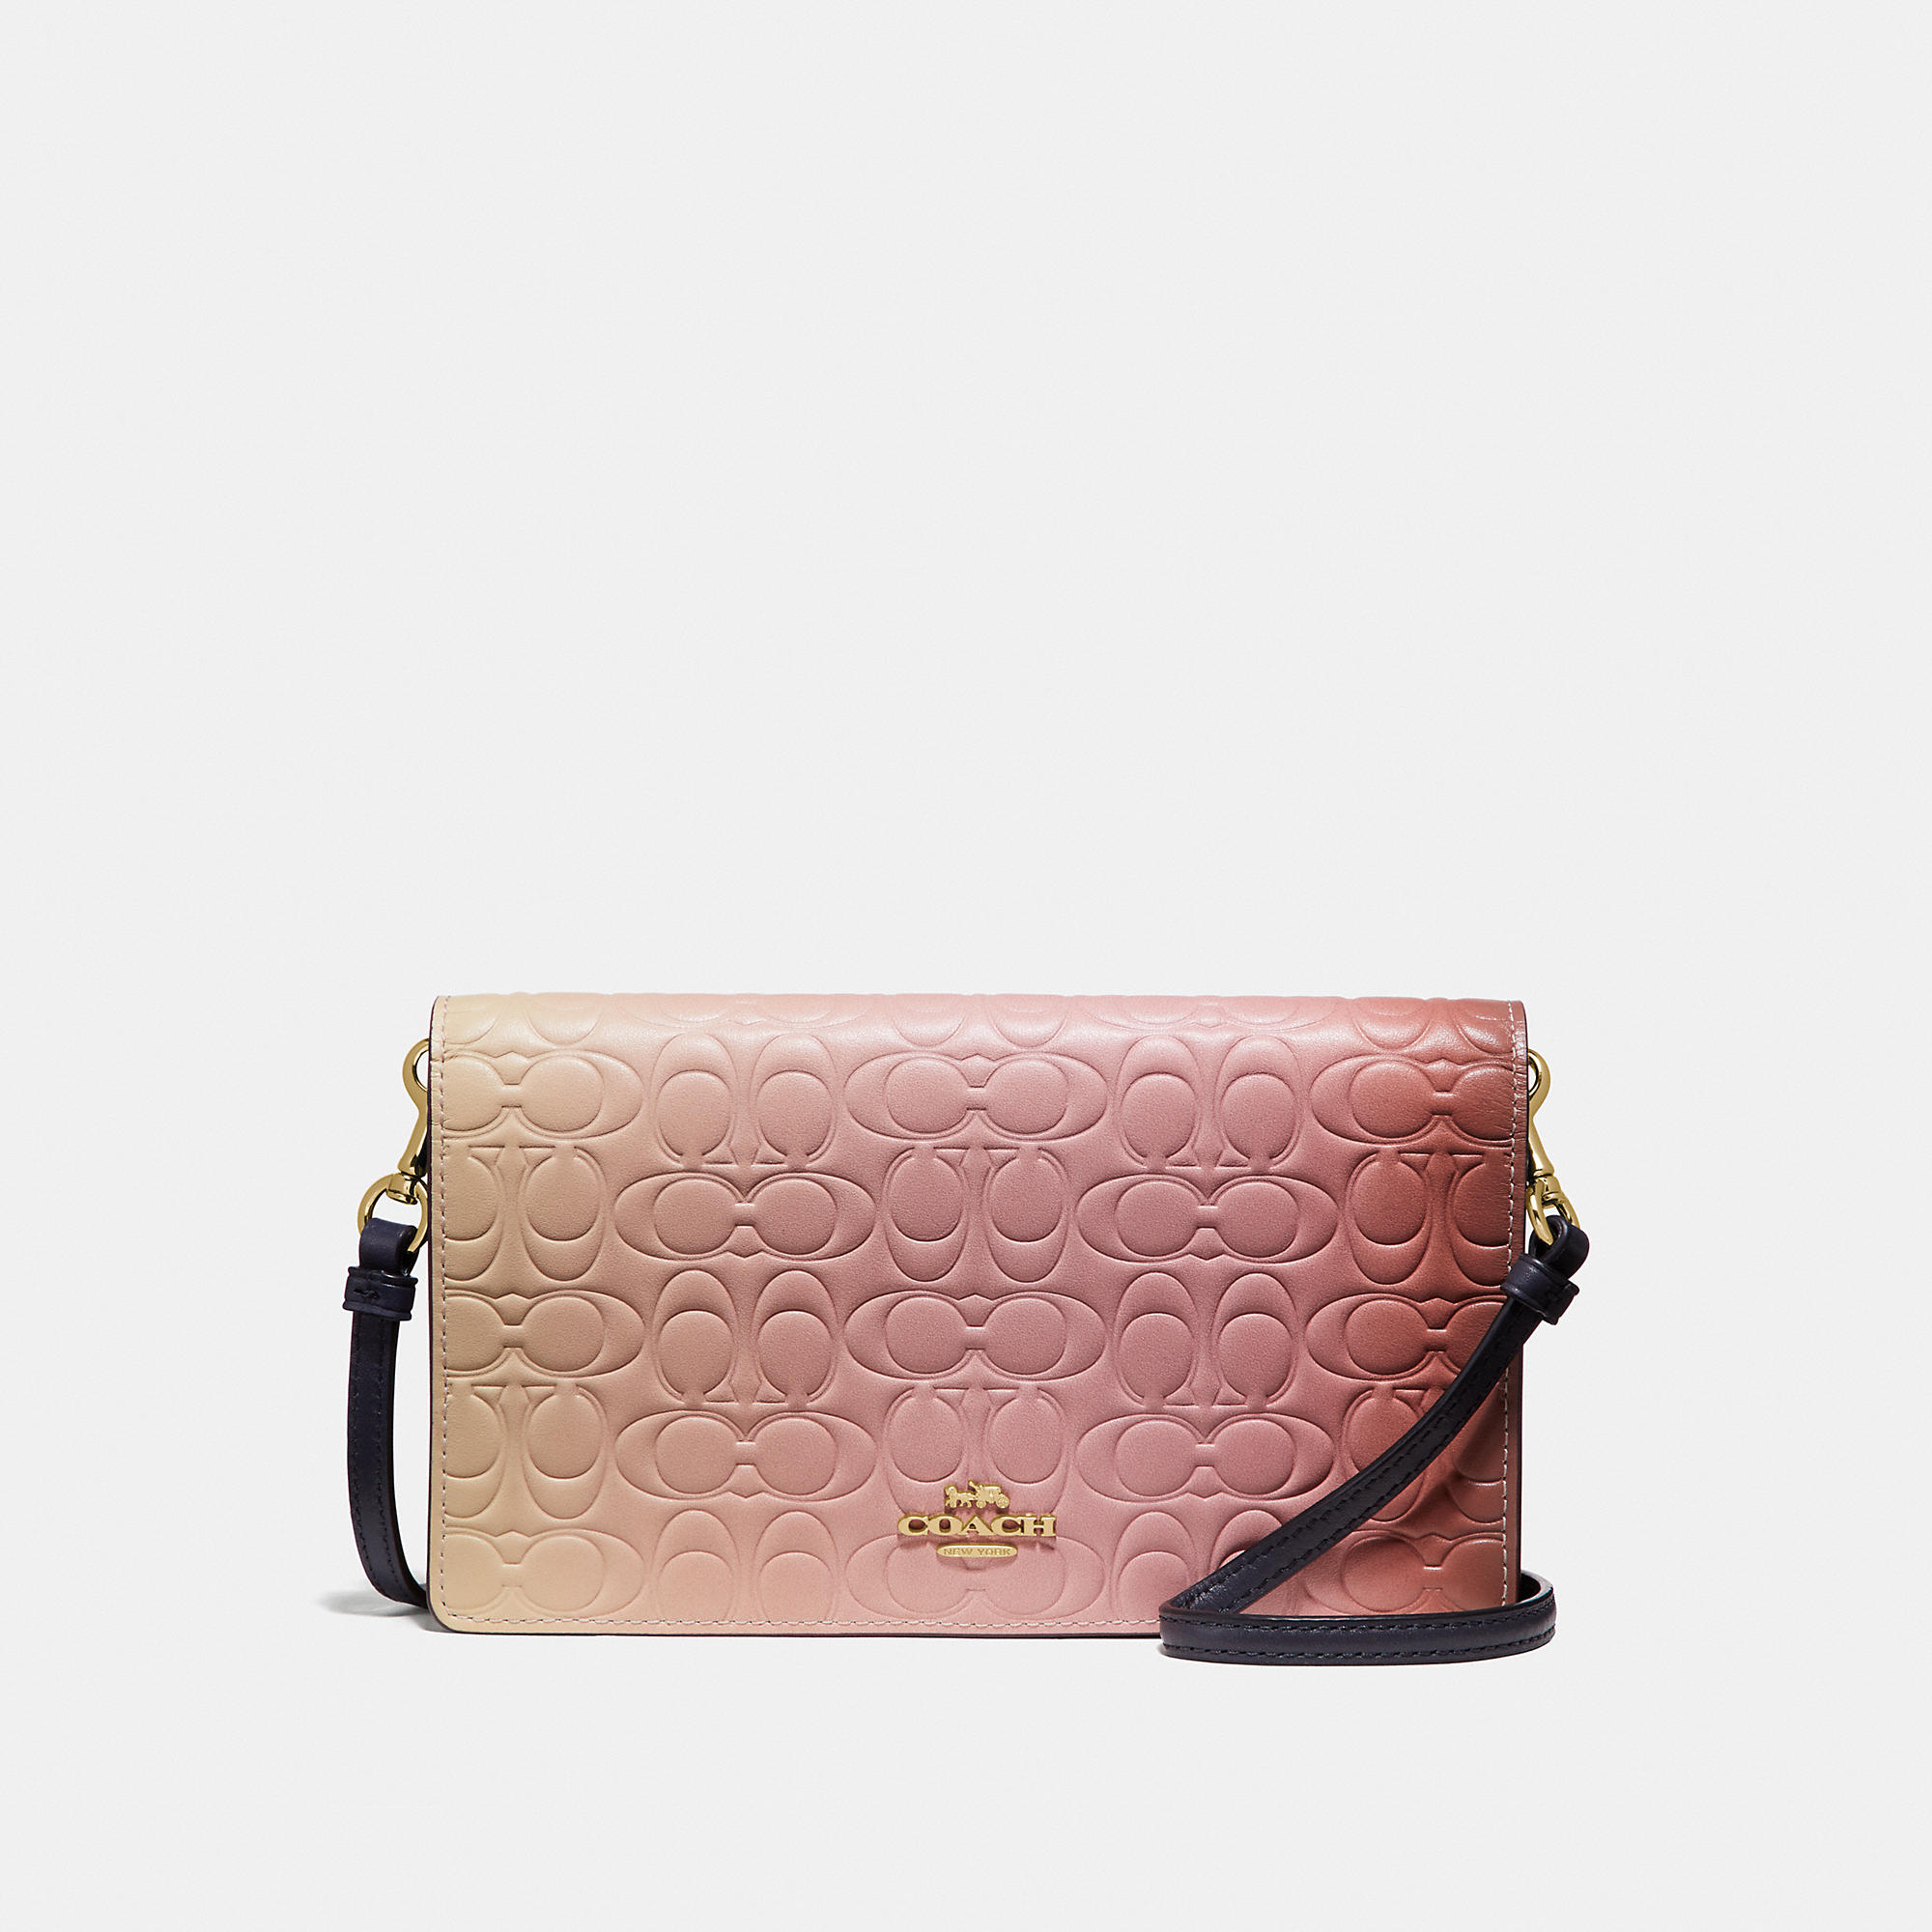 5871698468fc Coach Hayden Foldover Crossbody Clutch In Ombre Signature Leather In Pink  Multi Gold